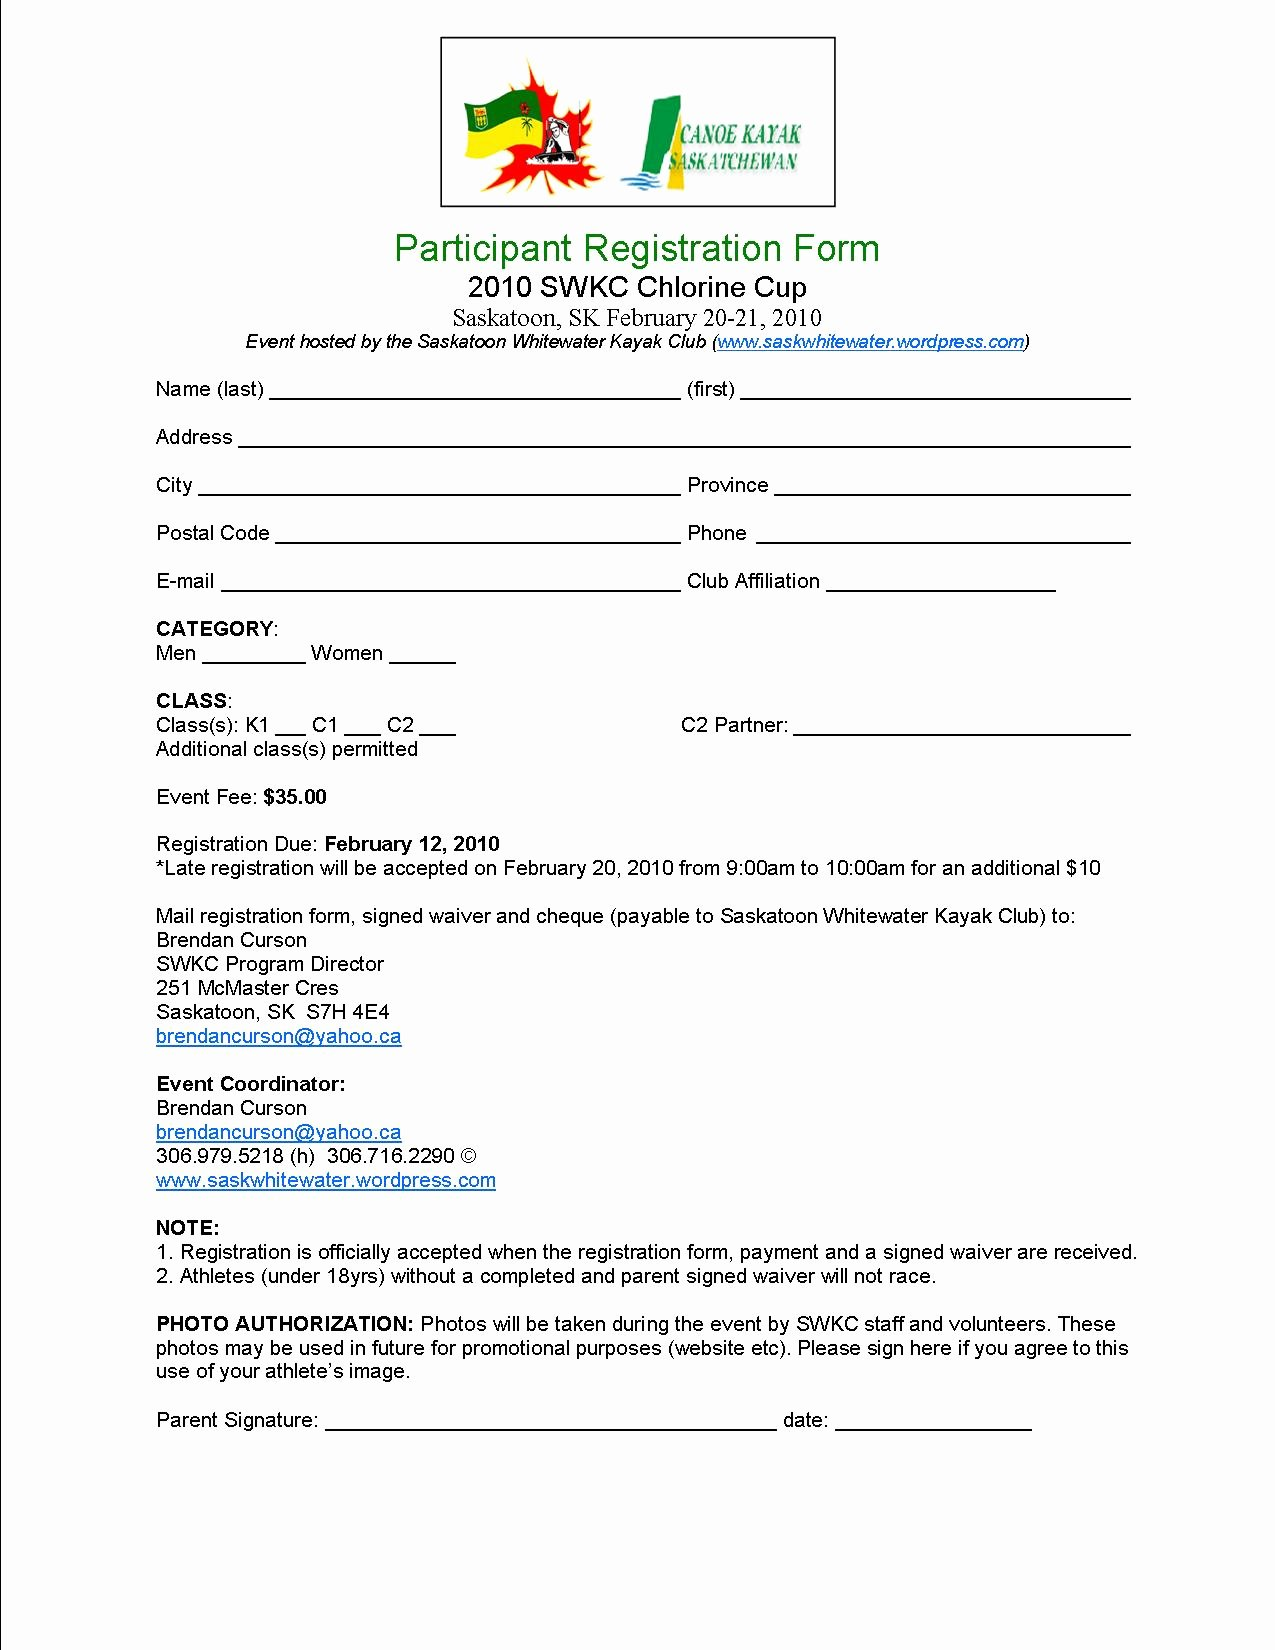 Youth Conference Registration form Template Gallery